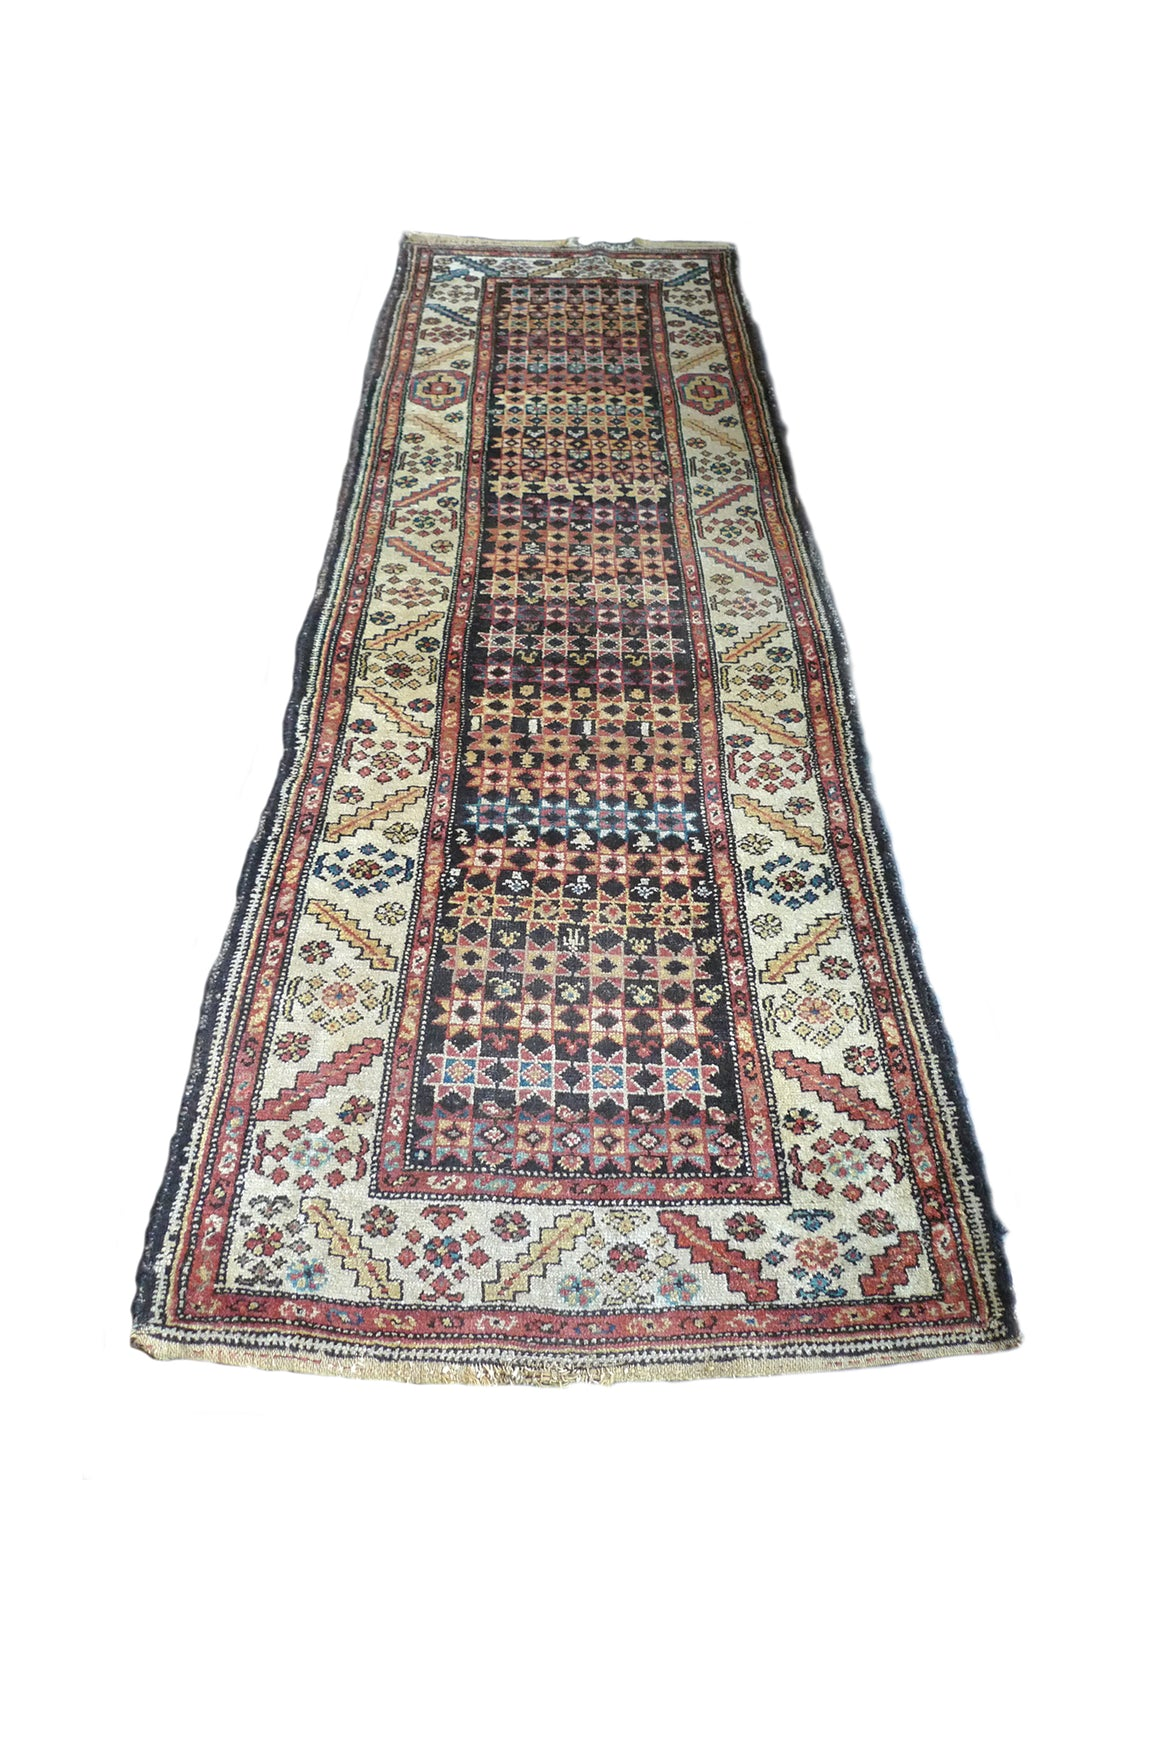 Early 20th Century Turkish Runner Rug